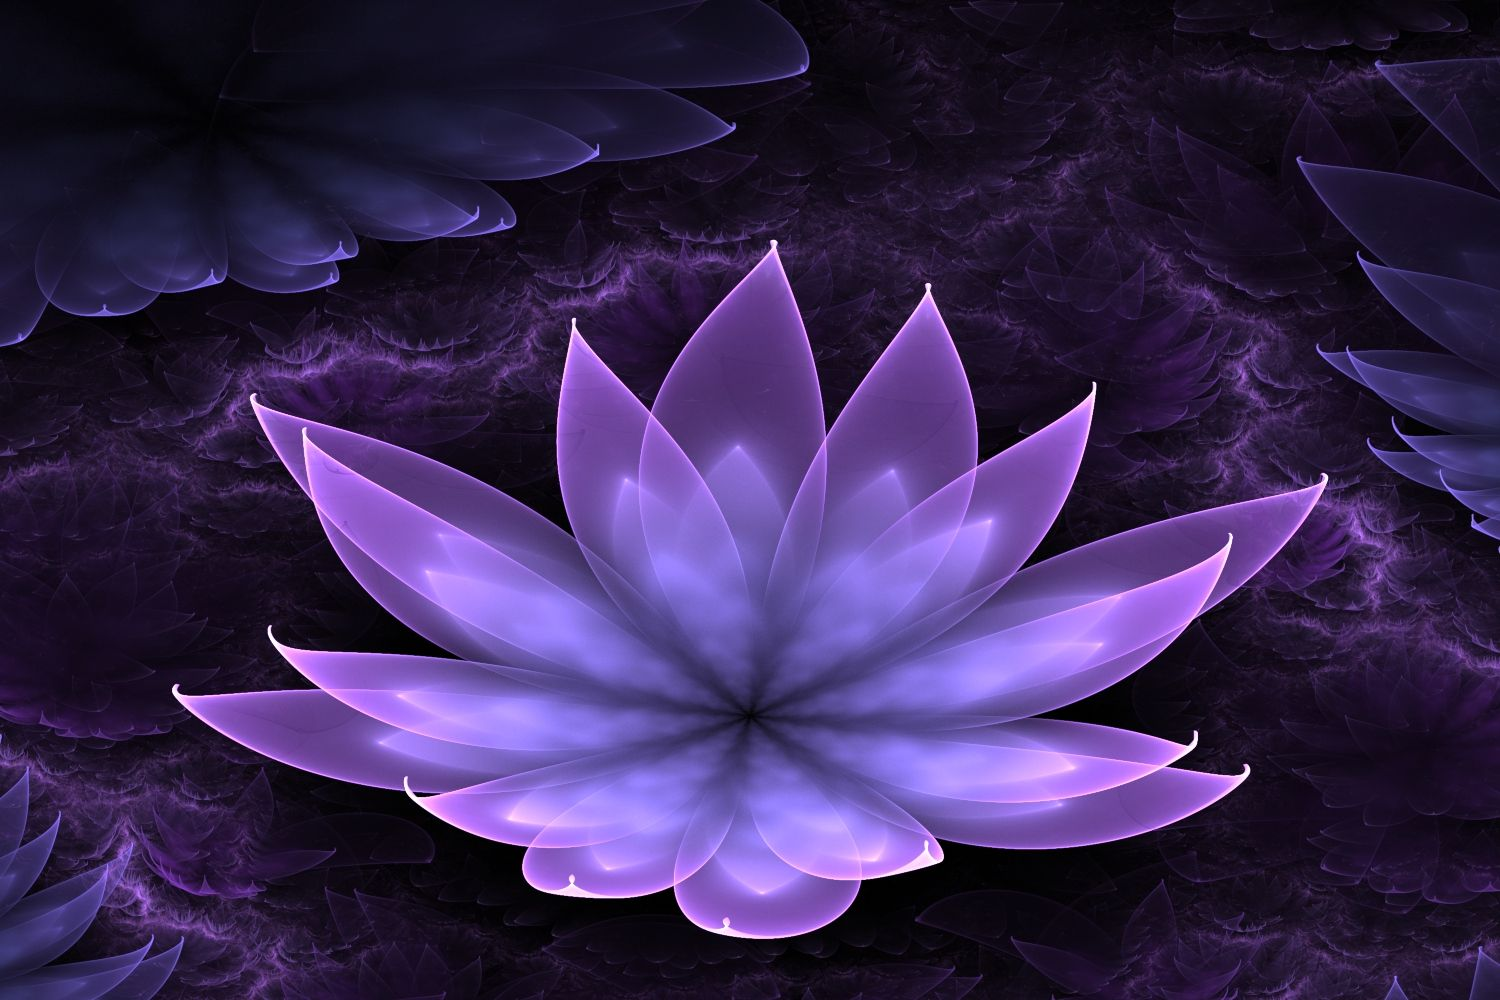 Purple lotus flower wallpapers photo natures wallpapers purple lotus flower wallpapers photo mightylinksfo